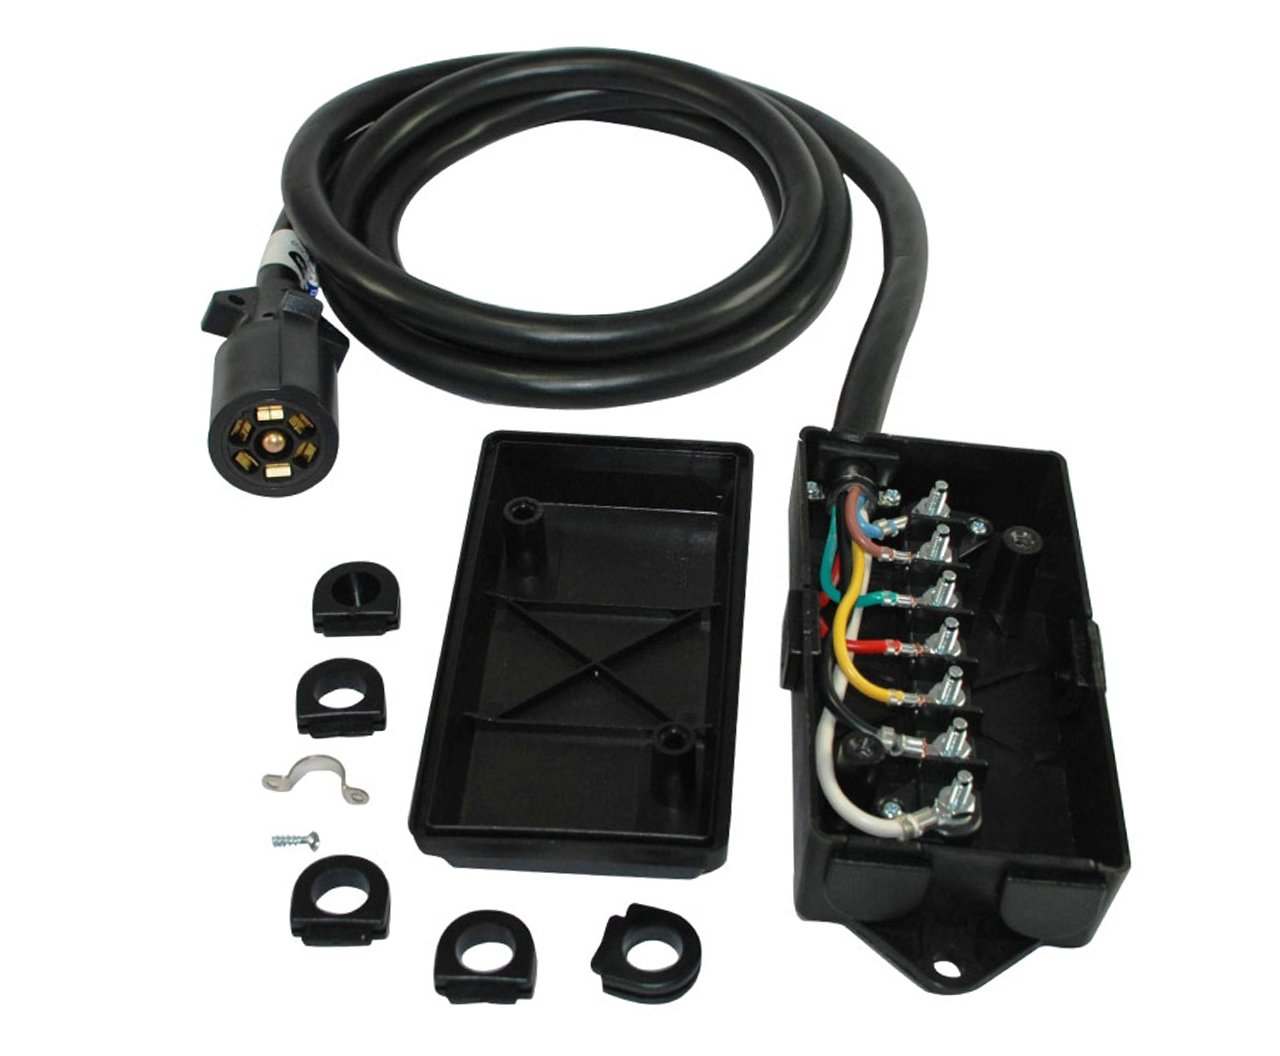 Amazon.com : Conntek 7-Way Trailer Cord and Junction Box : Sports & Outdoors